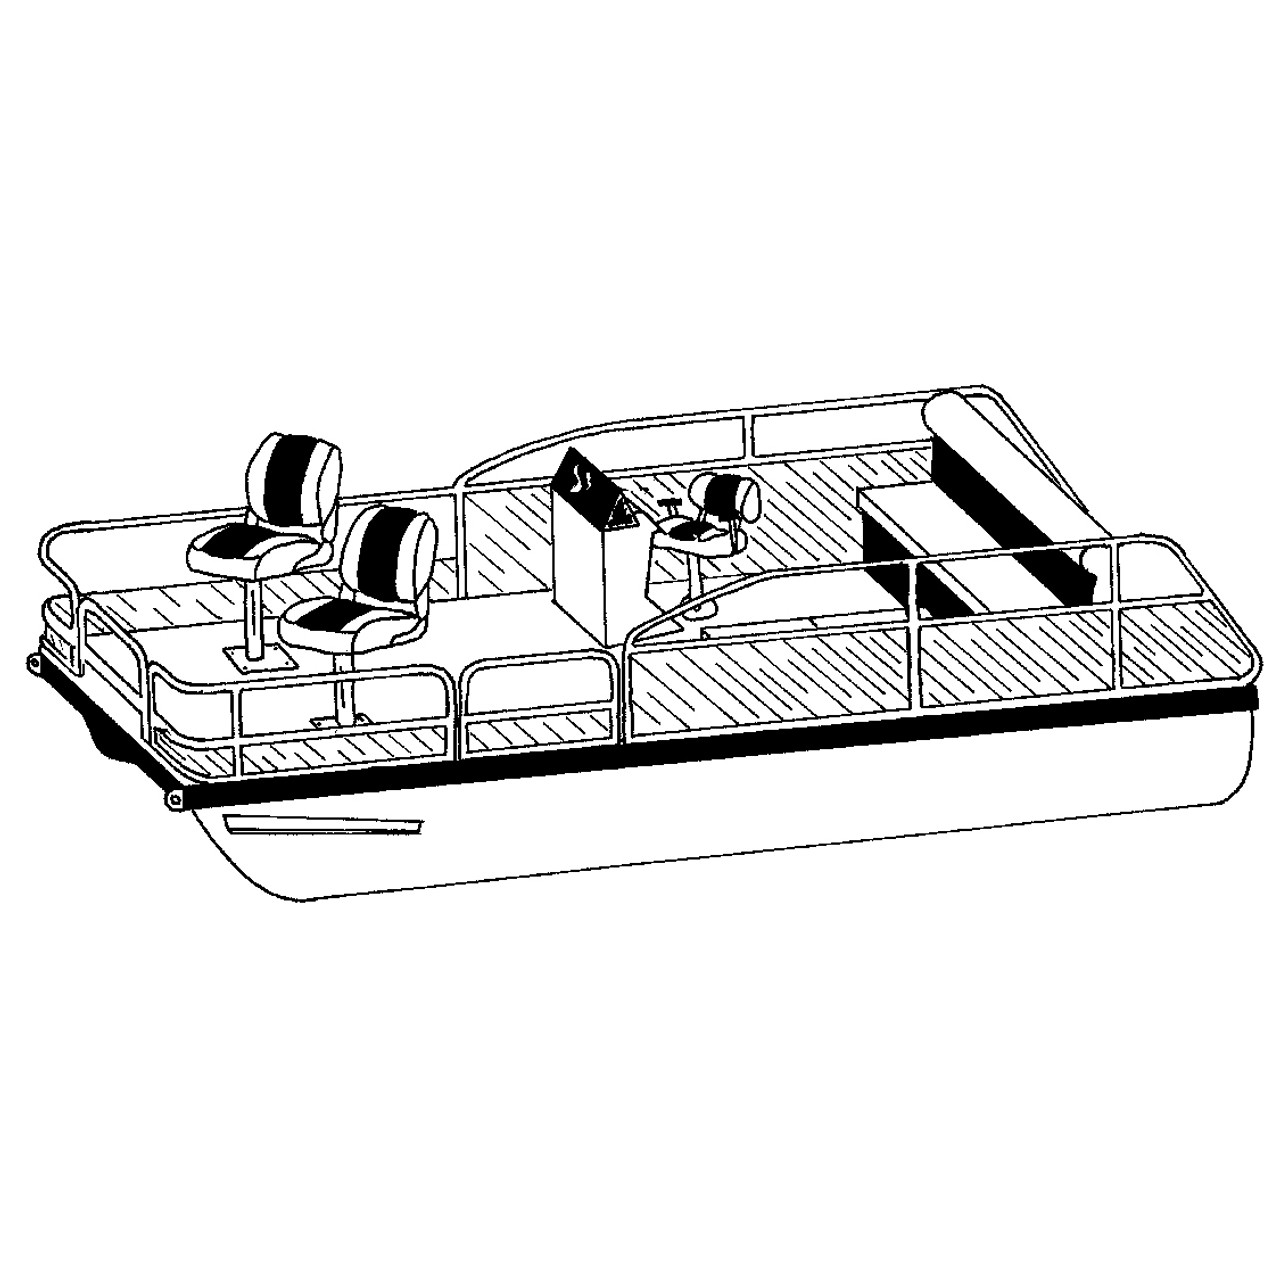 hight resolution of cover fits pontoon with low rails or fishing chairs at aft end of deck